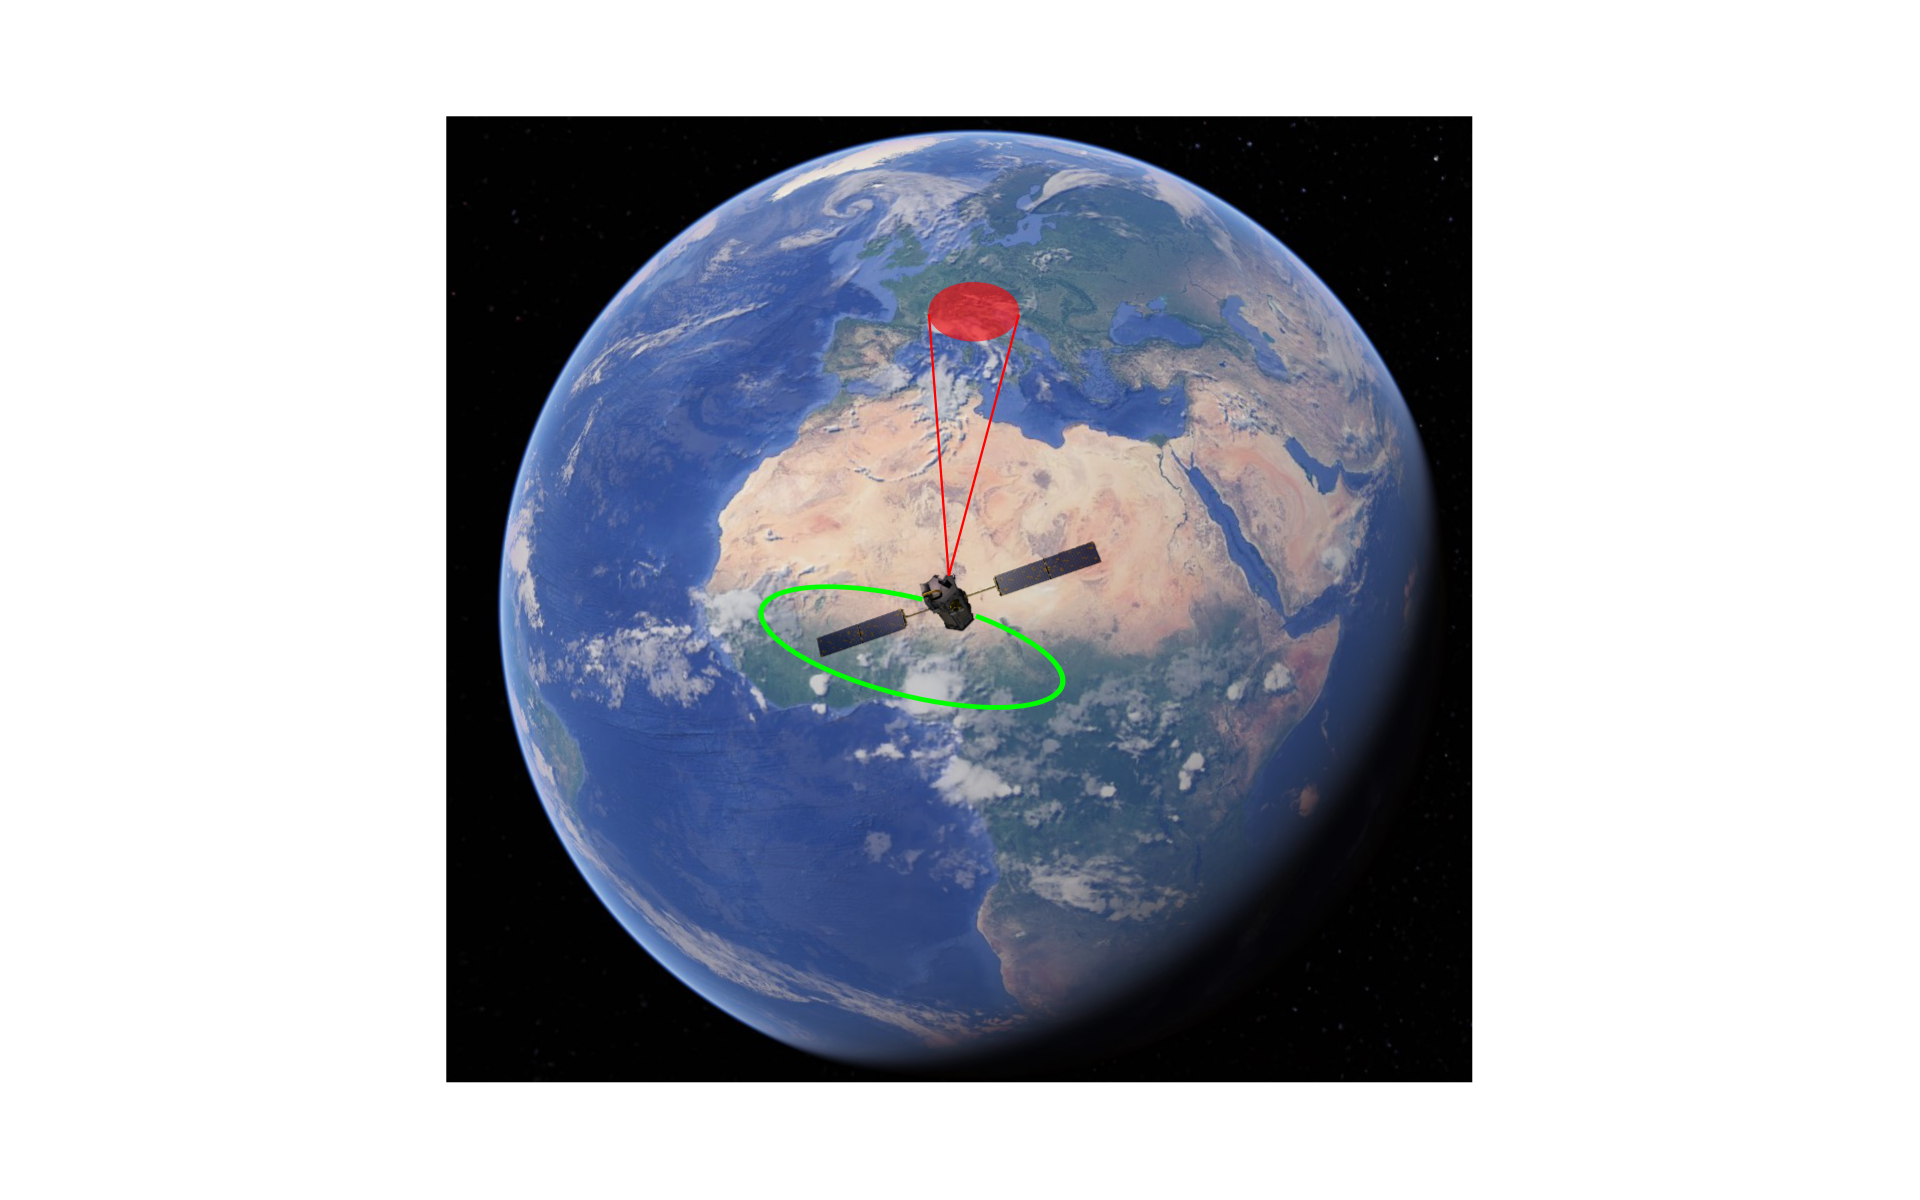 Geosynchronous – Continental Land-Atmosphere Sensing System (G-CLASS)